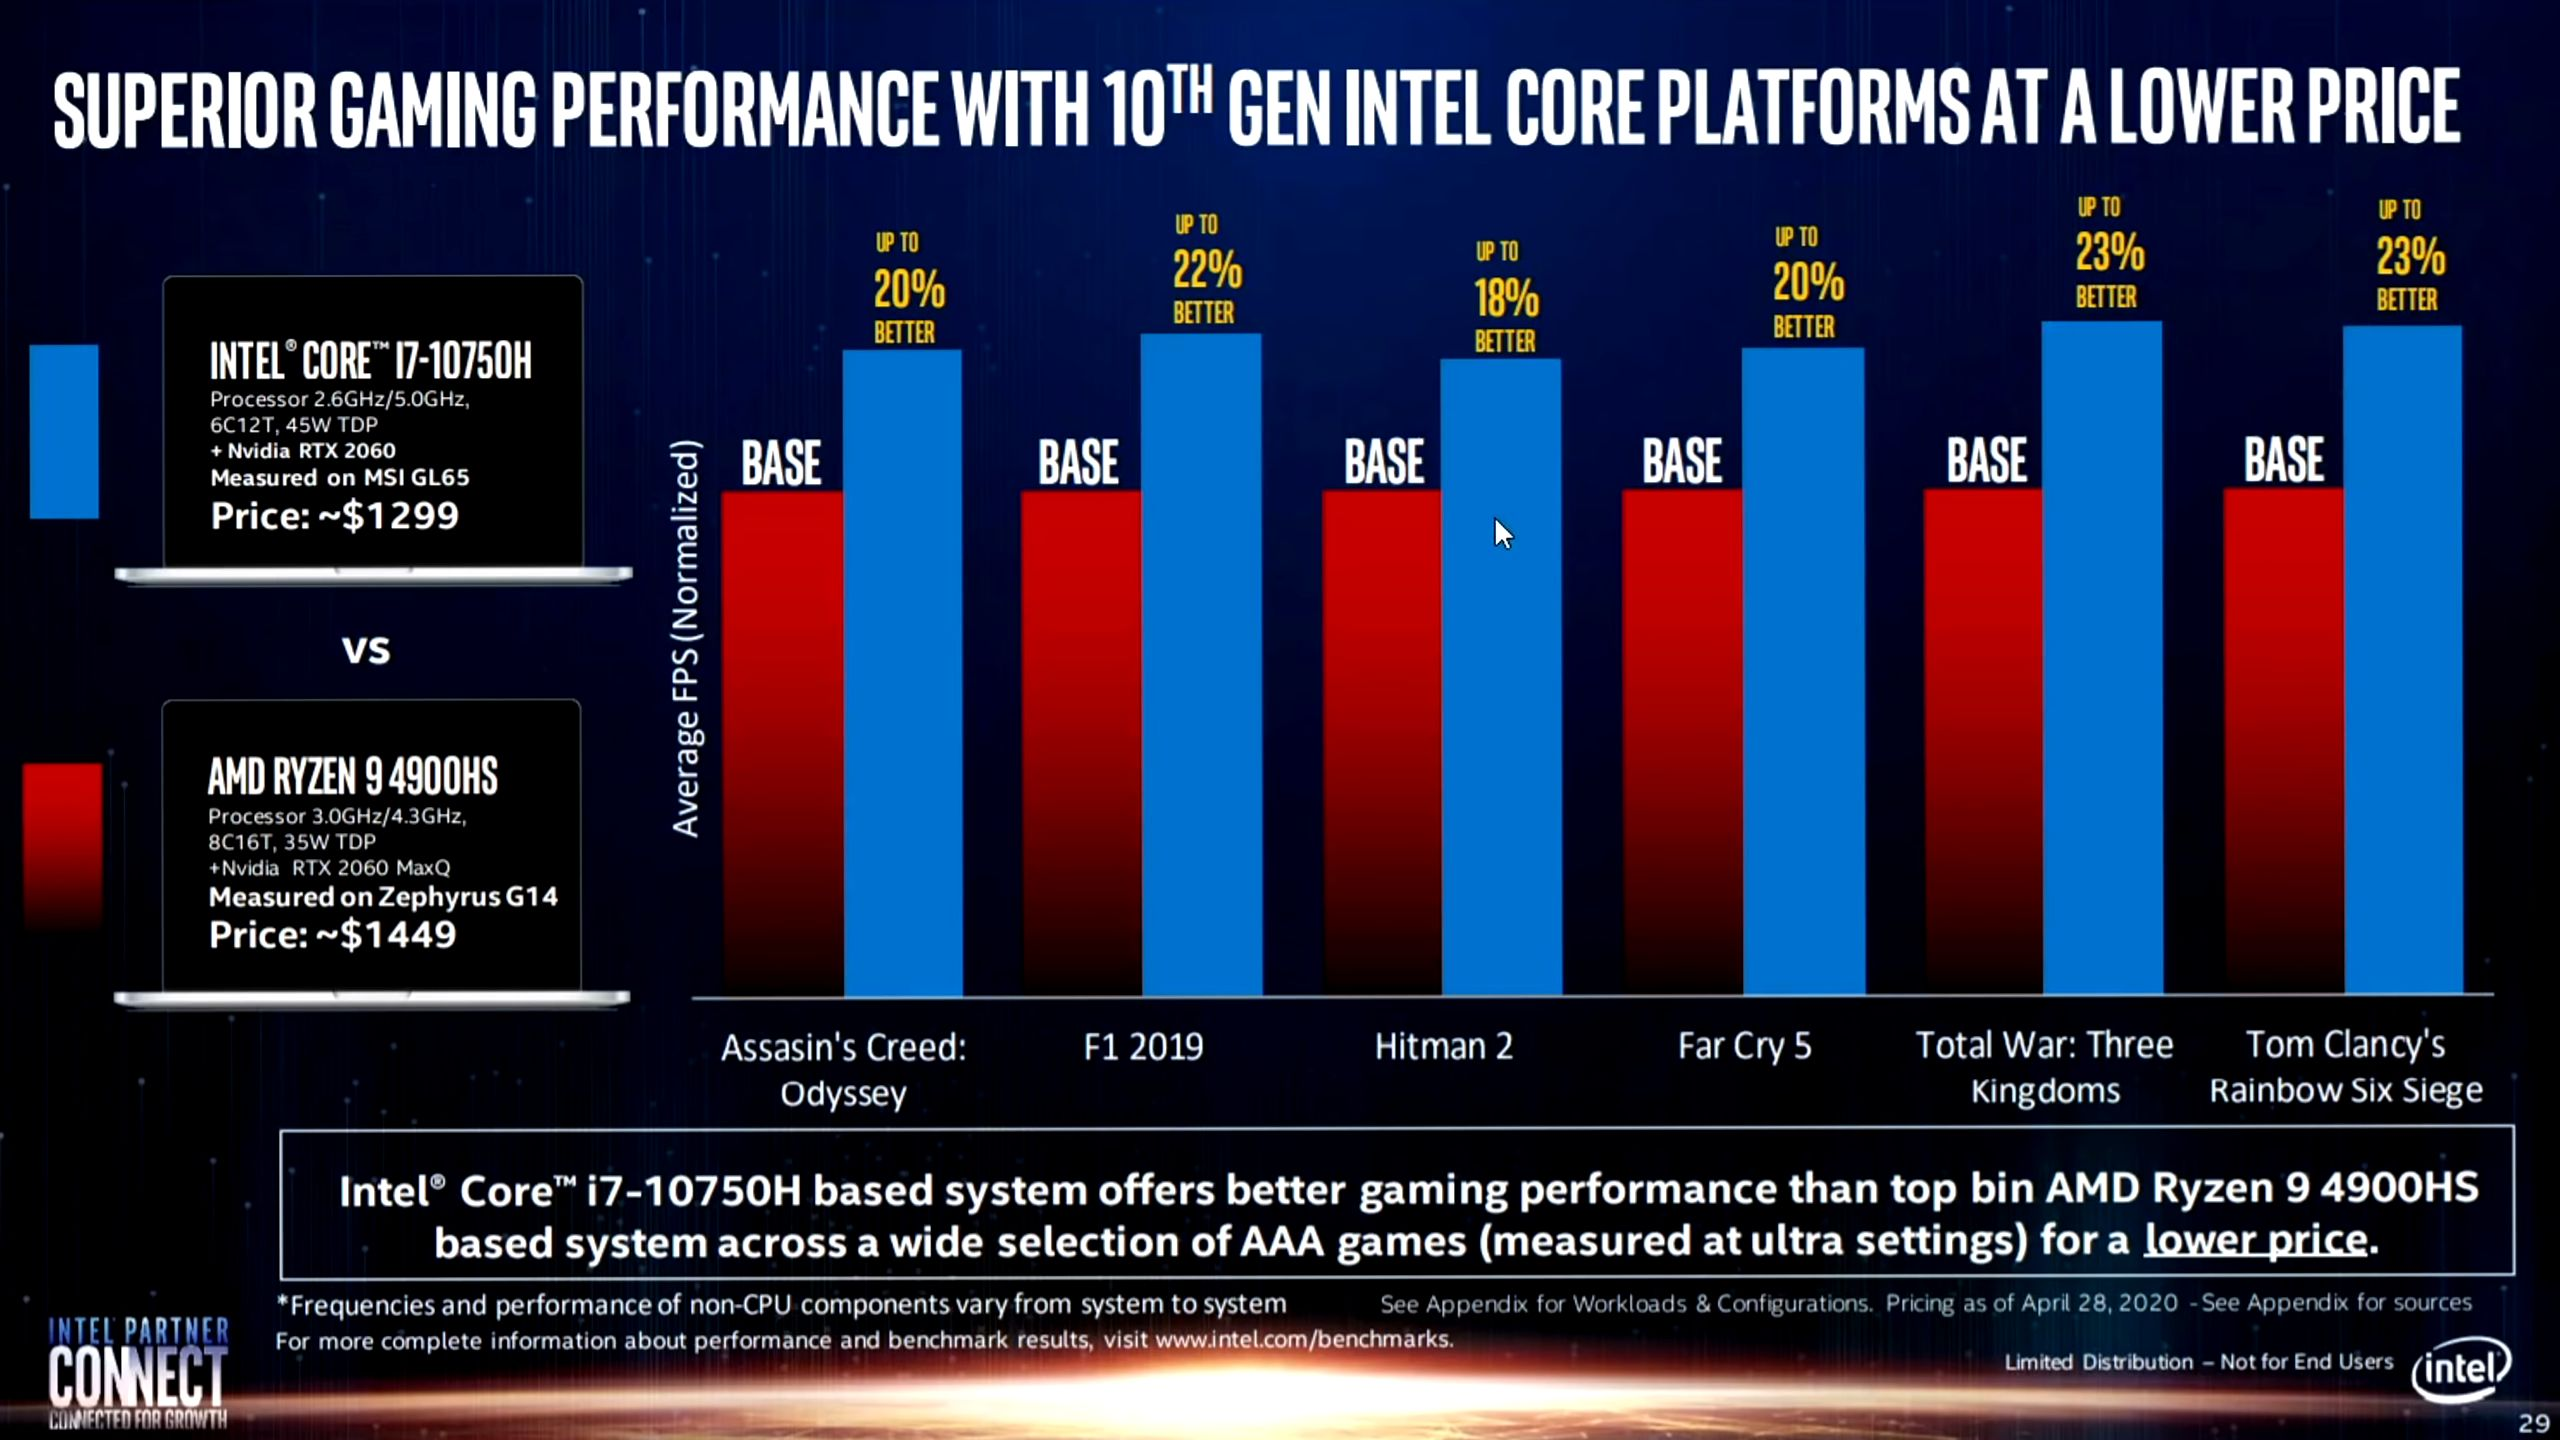 Intel S Real World Performance Slides Once Again Show Misleading Benchmarks Versus Amd Ryzen Cpus